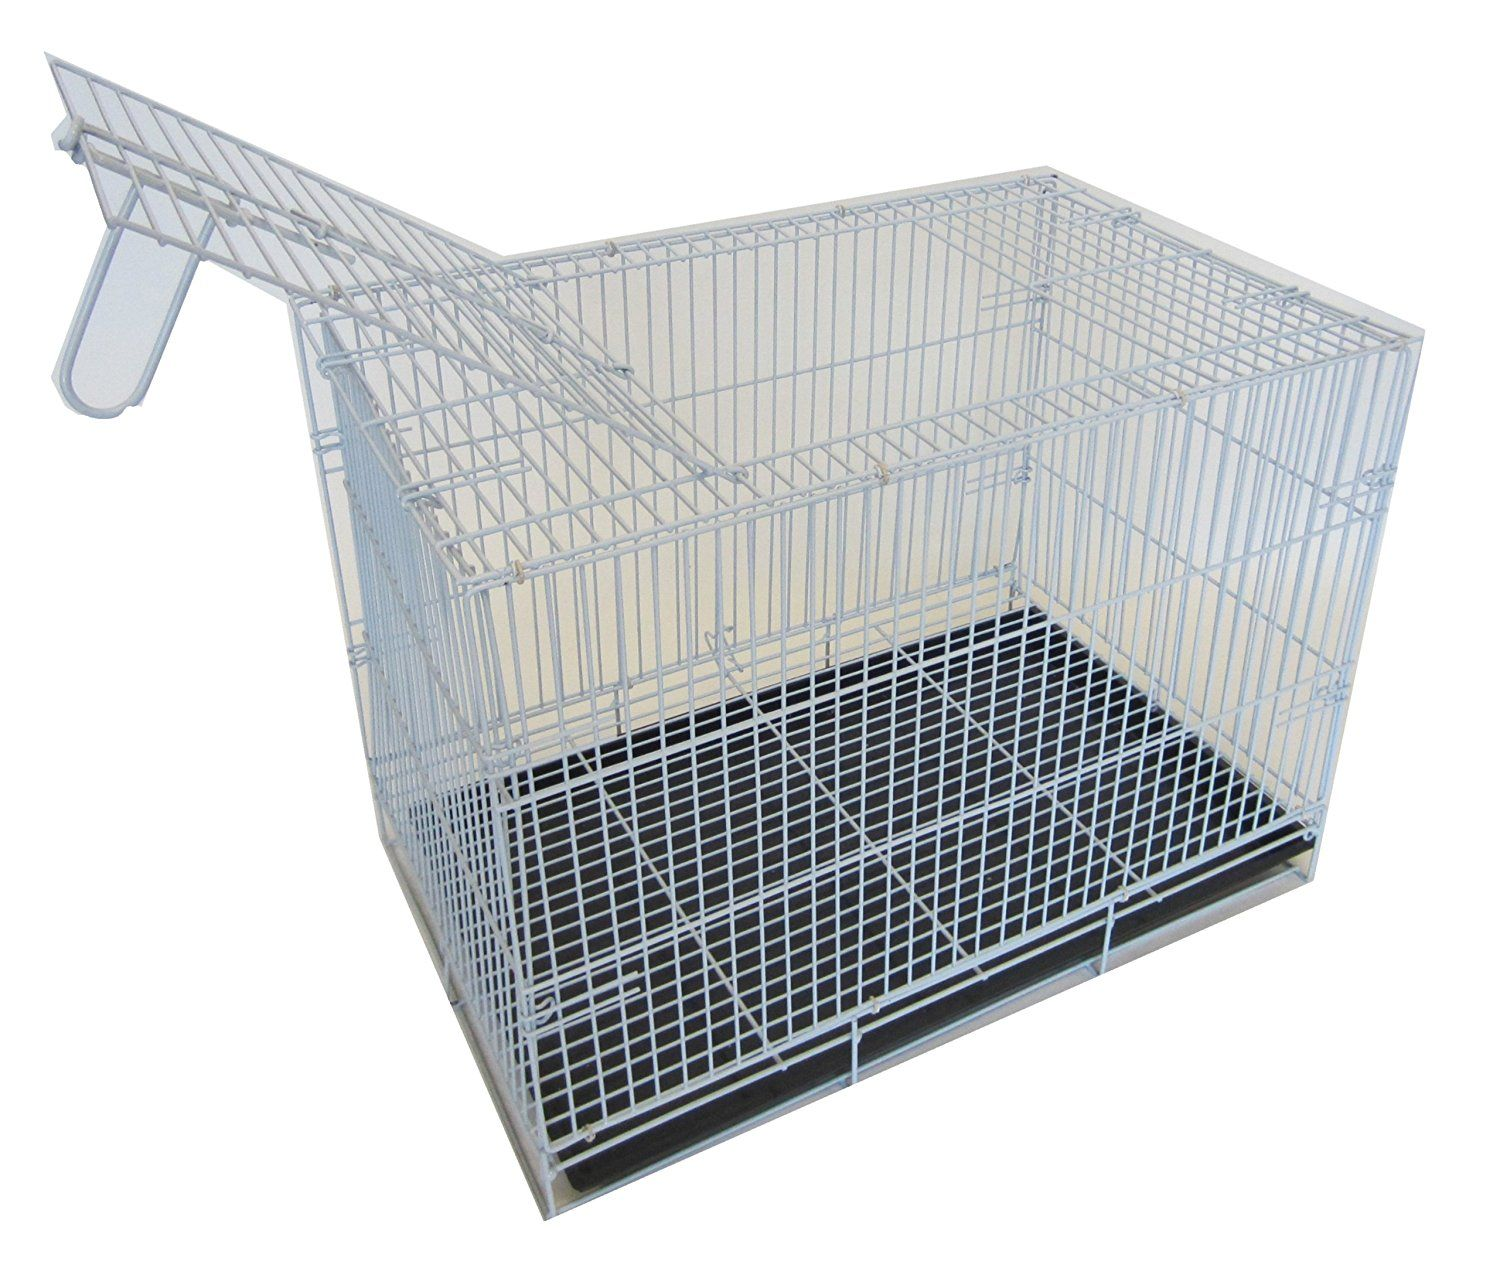 Yml 20 Inch Small Animal Crate With Wire Bottom Grate And Black Plastic Tray White Startling Review Available Here Dog Crates